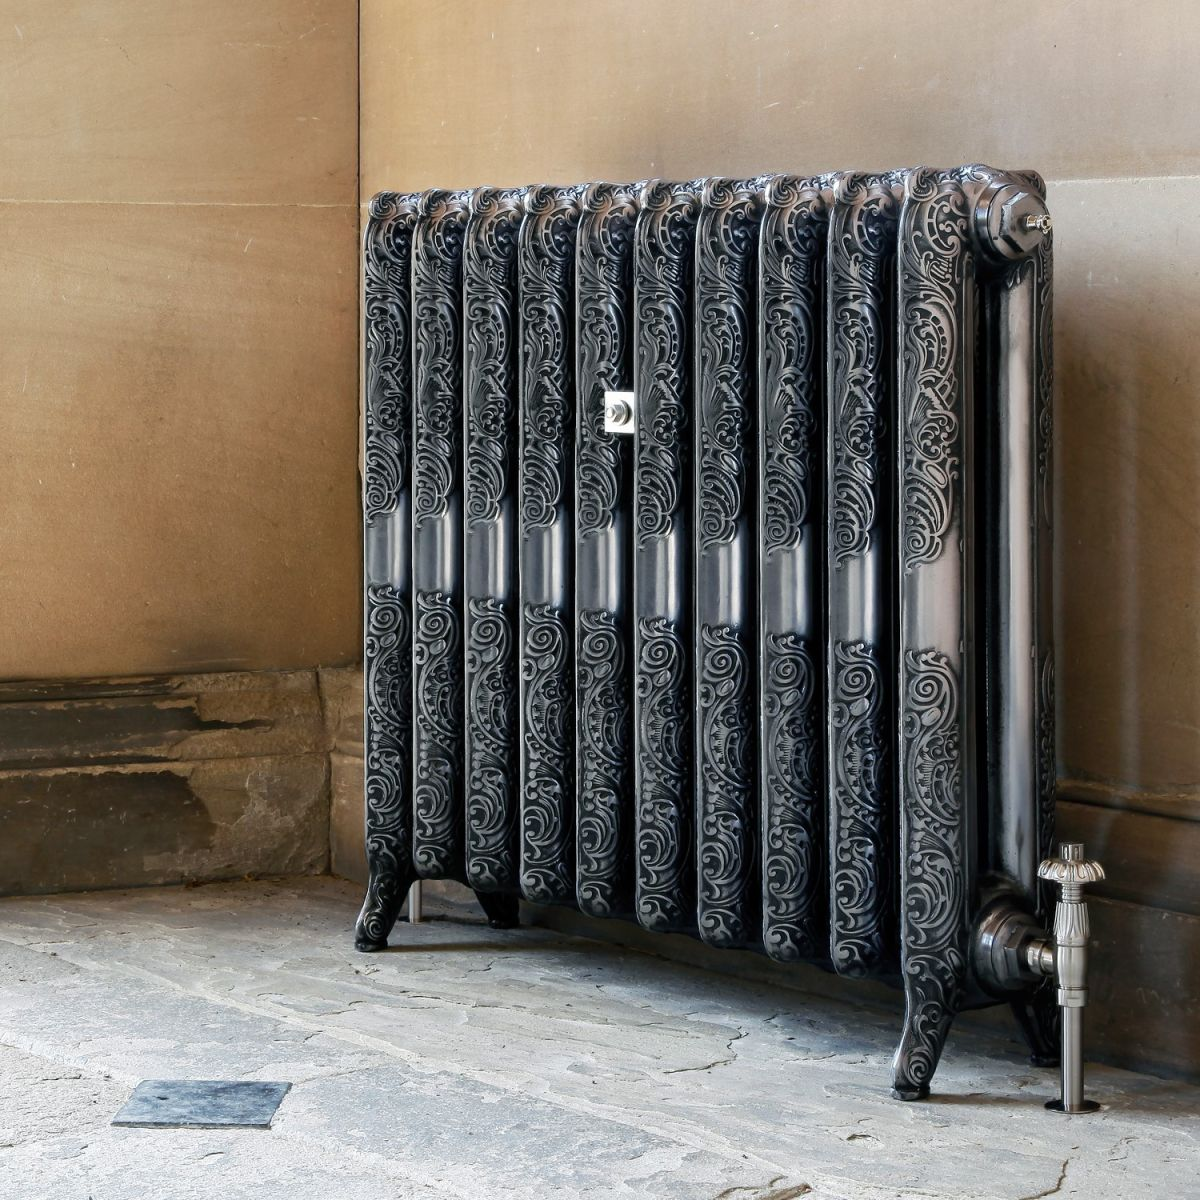 How To Bleed A Radiator Real Homes